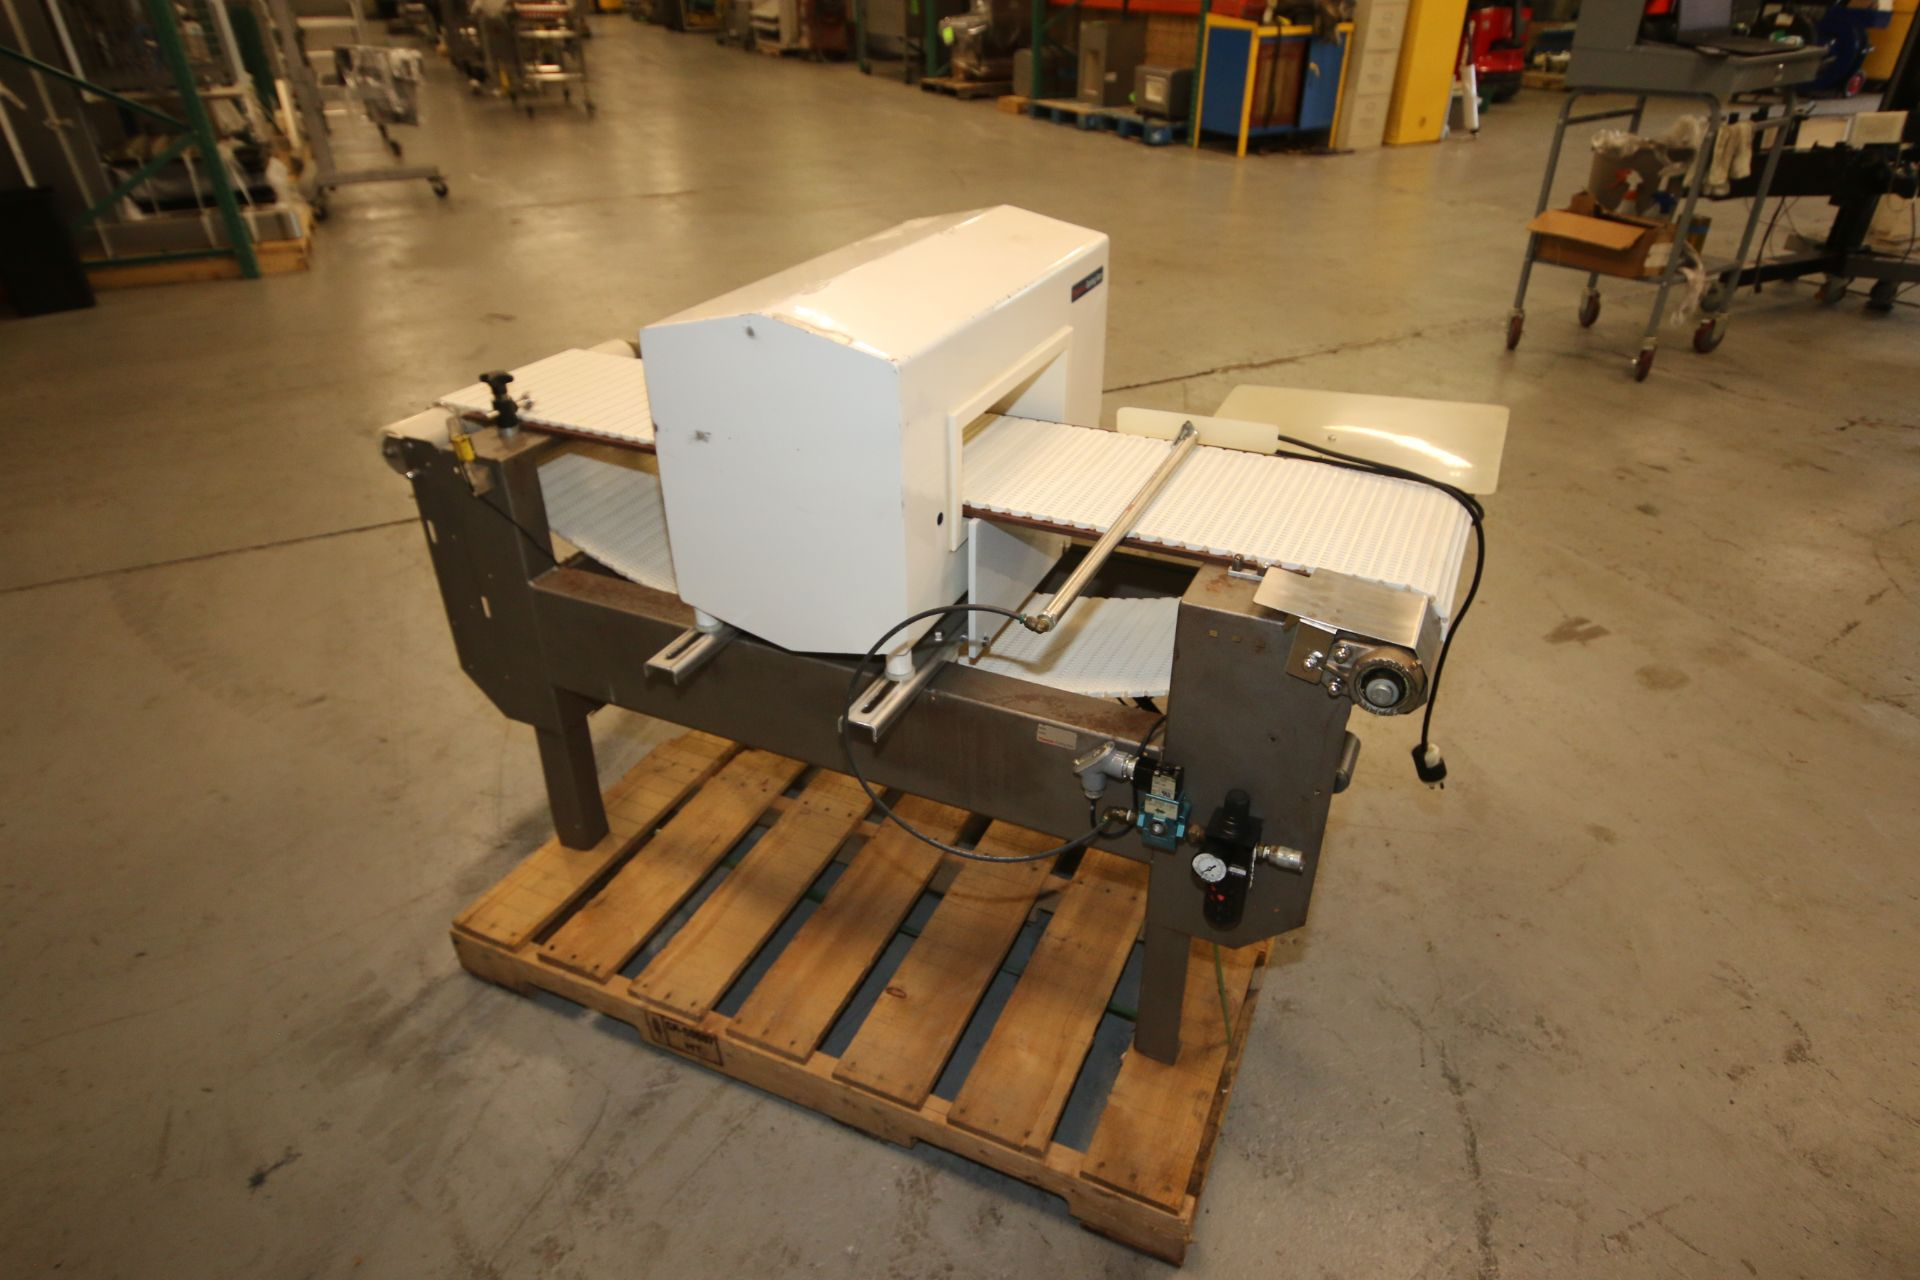 "Lot 17 - Goring Kerr Metal Detector, Type DSP2, S/N 59179-3, 110 Volts, 1 Phase, with Aprox. 14"" W x 5"" H"